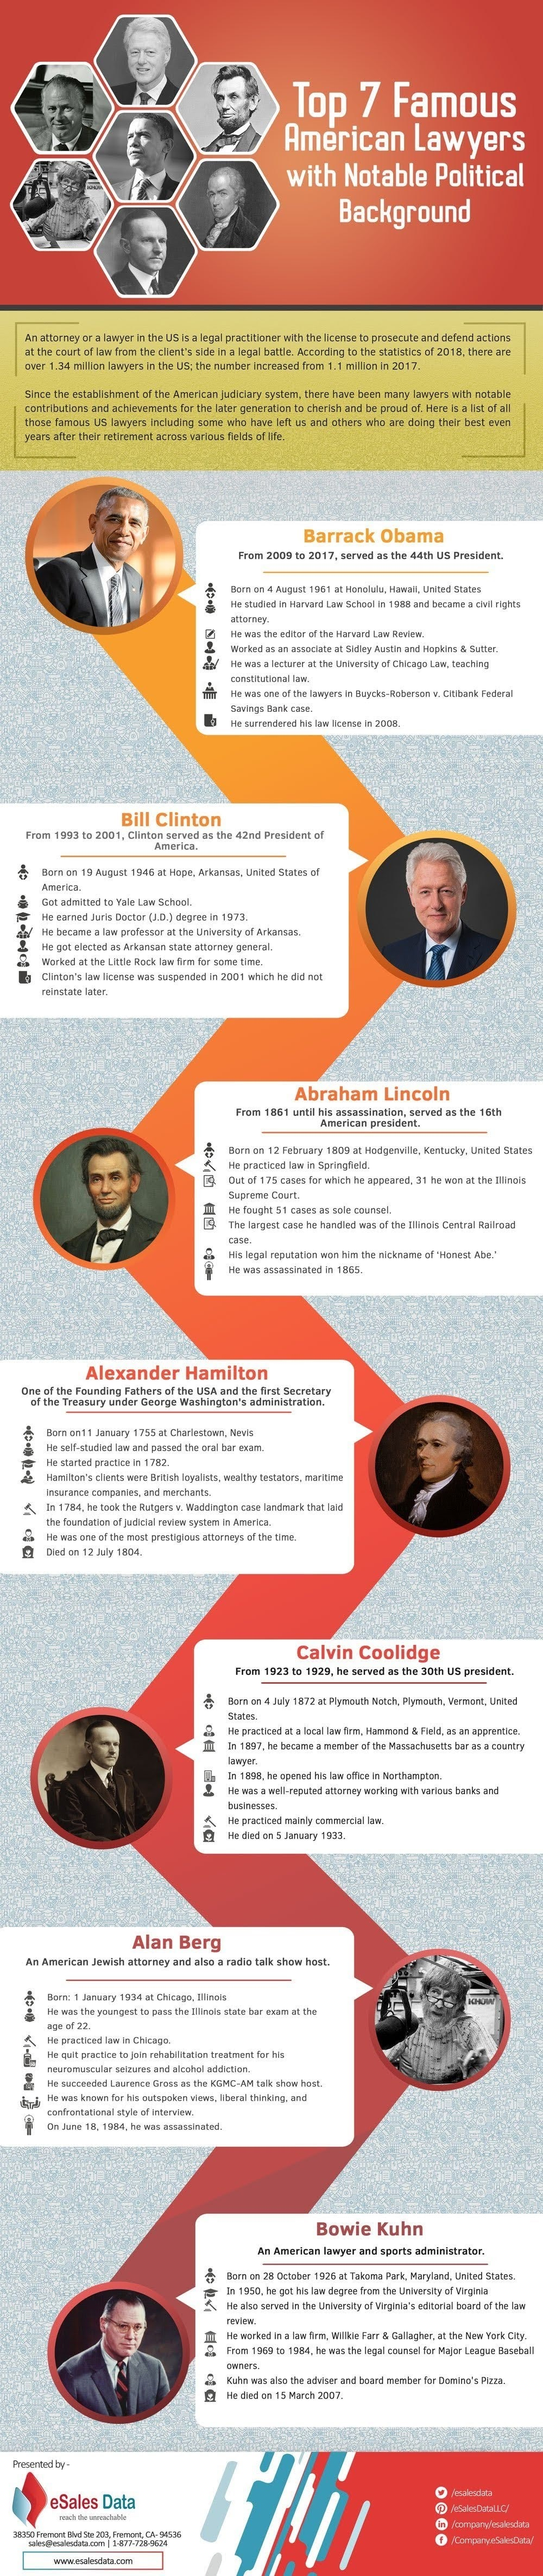 7 Famous American Lawyers With Notable Political Background #infographic